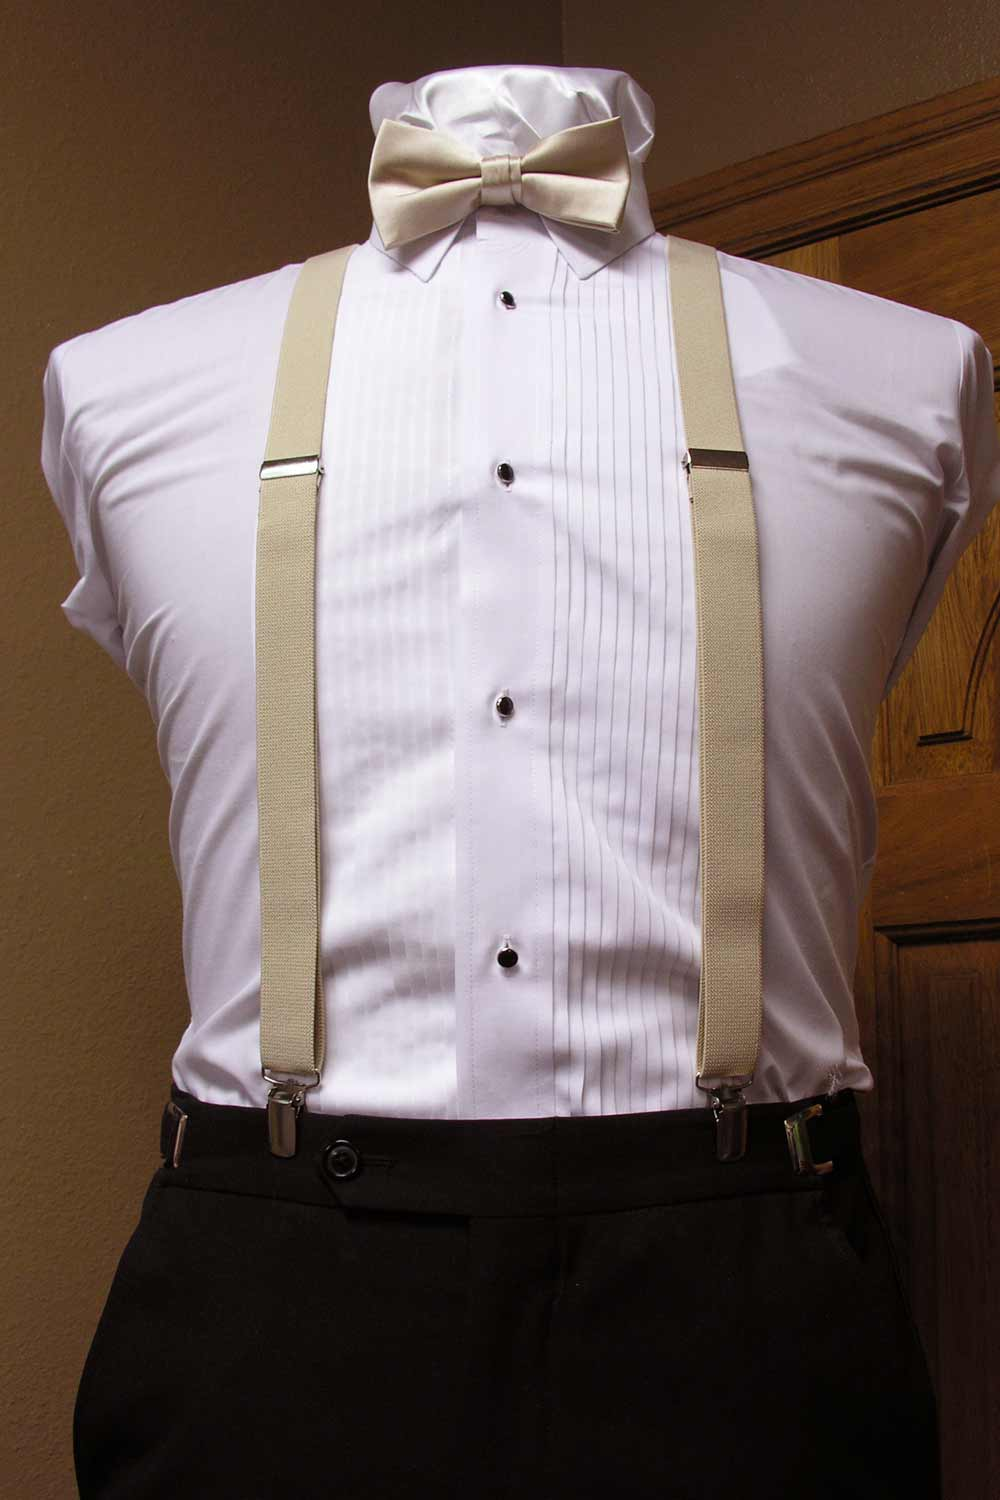 28db55061d27 Champagne Men's Suspender 1-Inch X Back With Champagne Pre-Tied Bow Tie  Spencer J's Collection